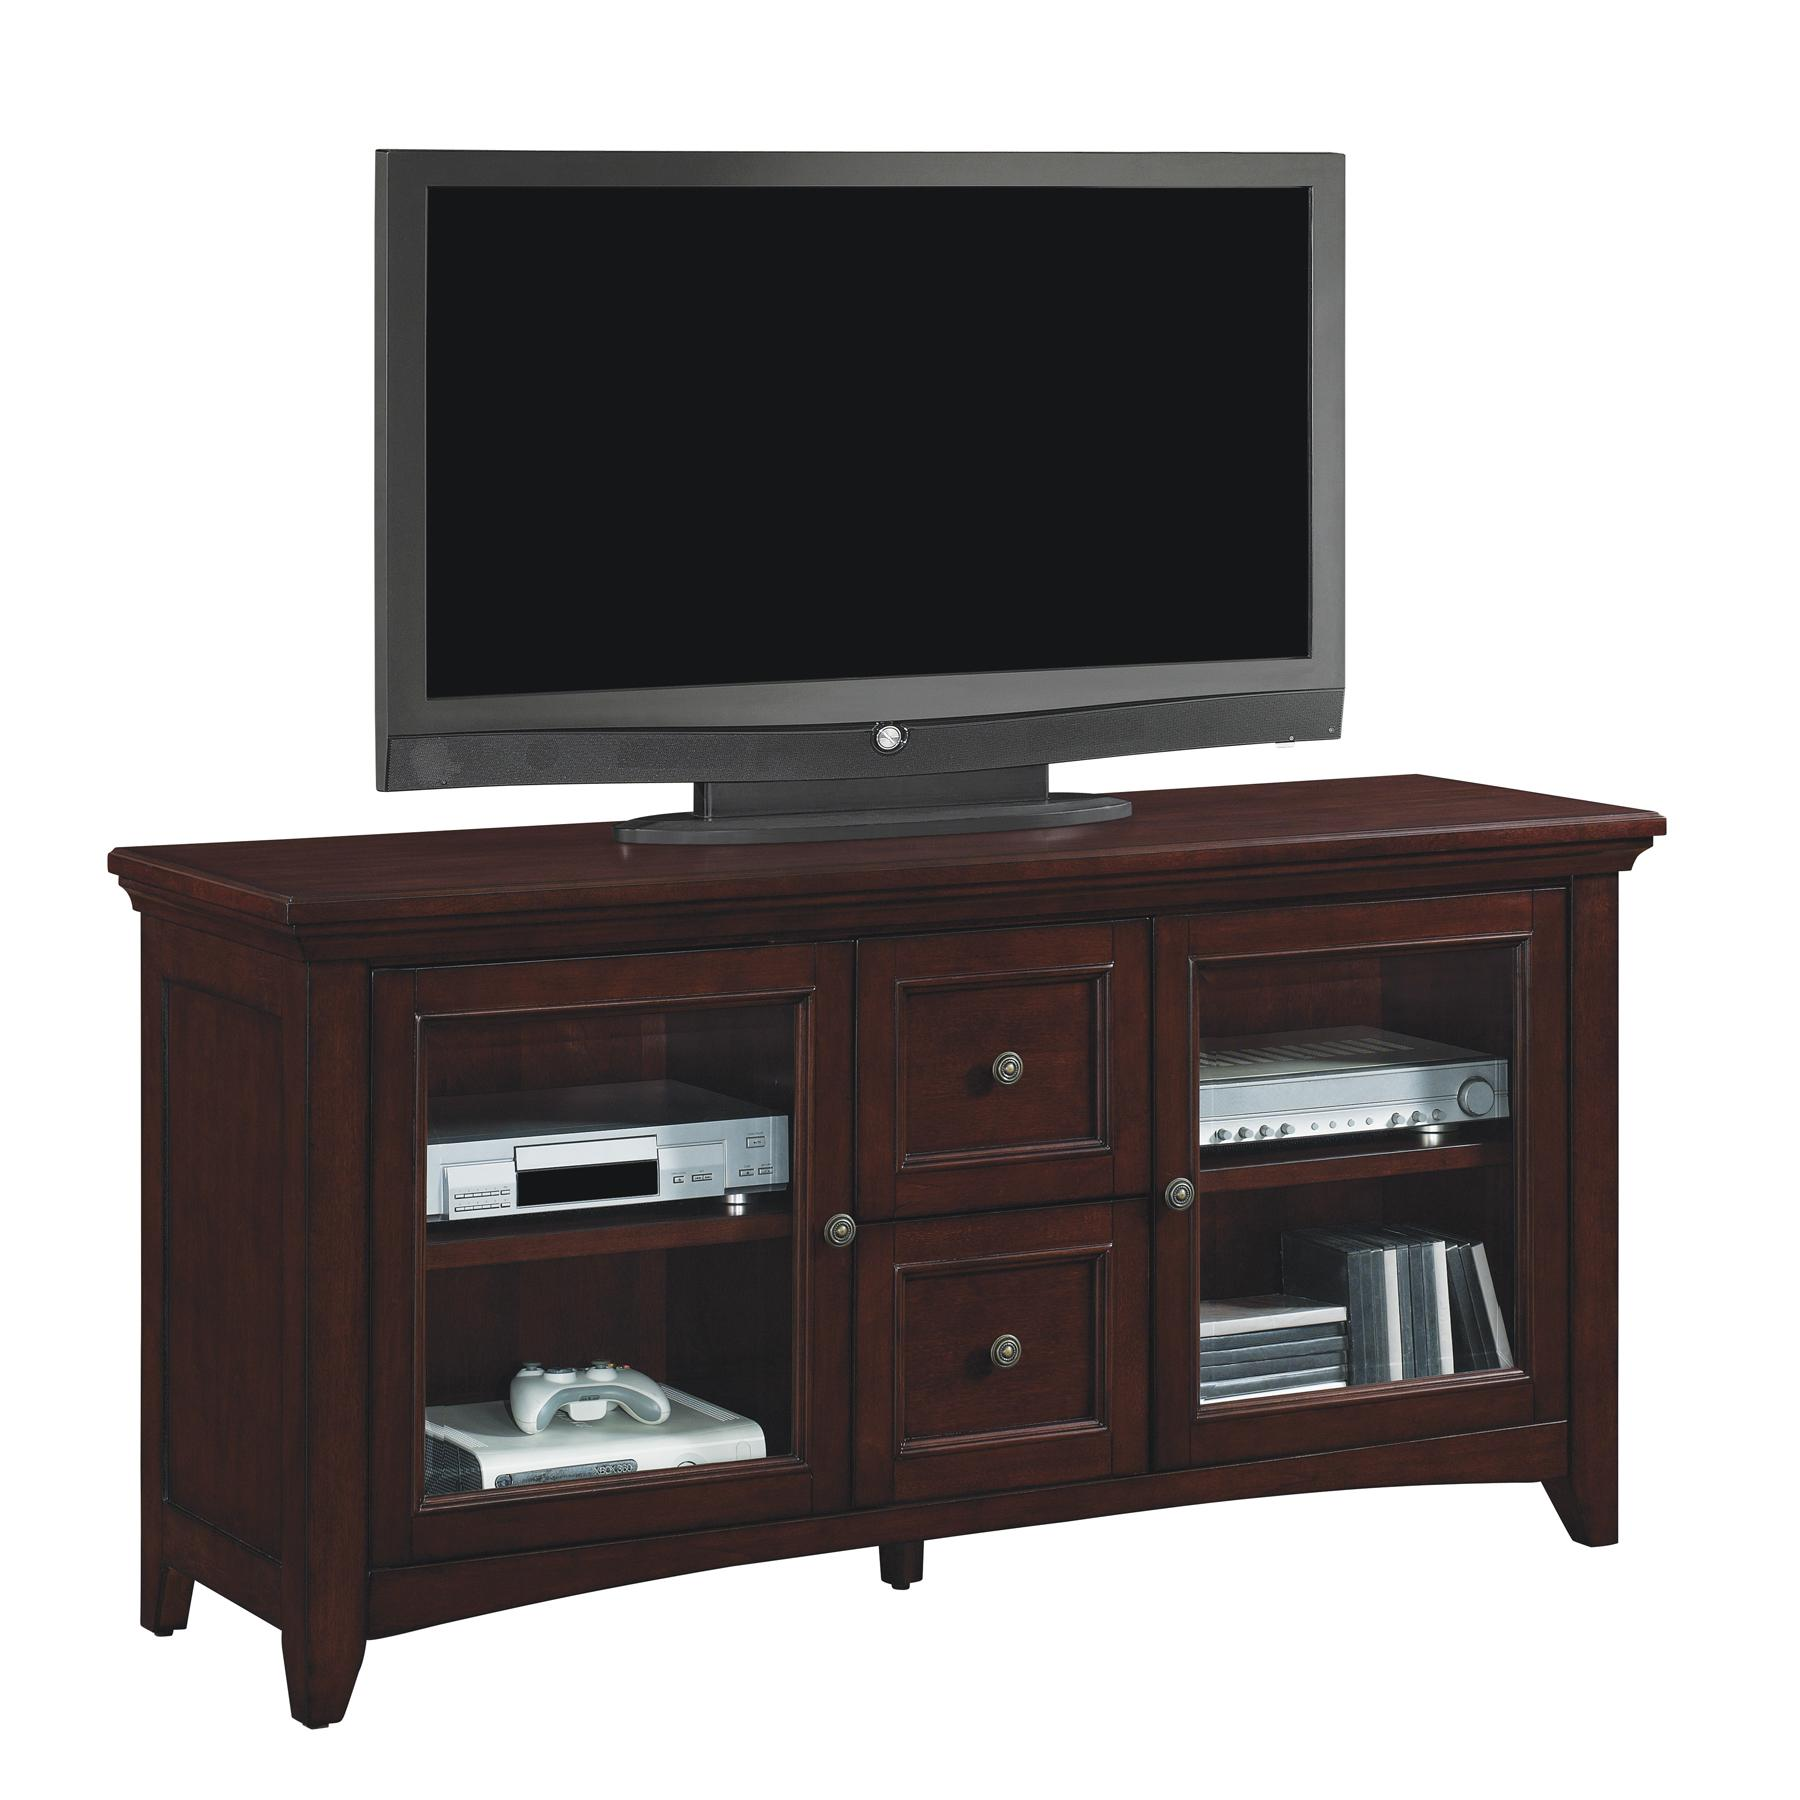 Amazon Bell O TC60 1012 C244 Beaumont TV Stand for TV s up to